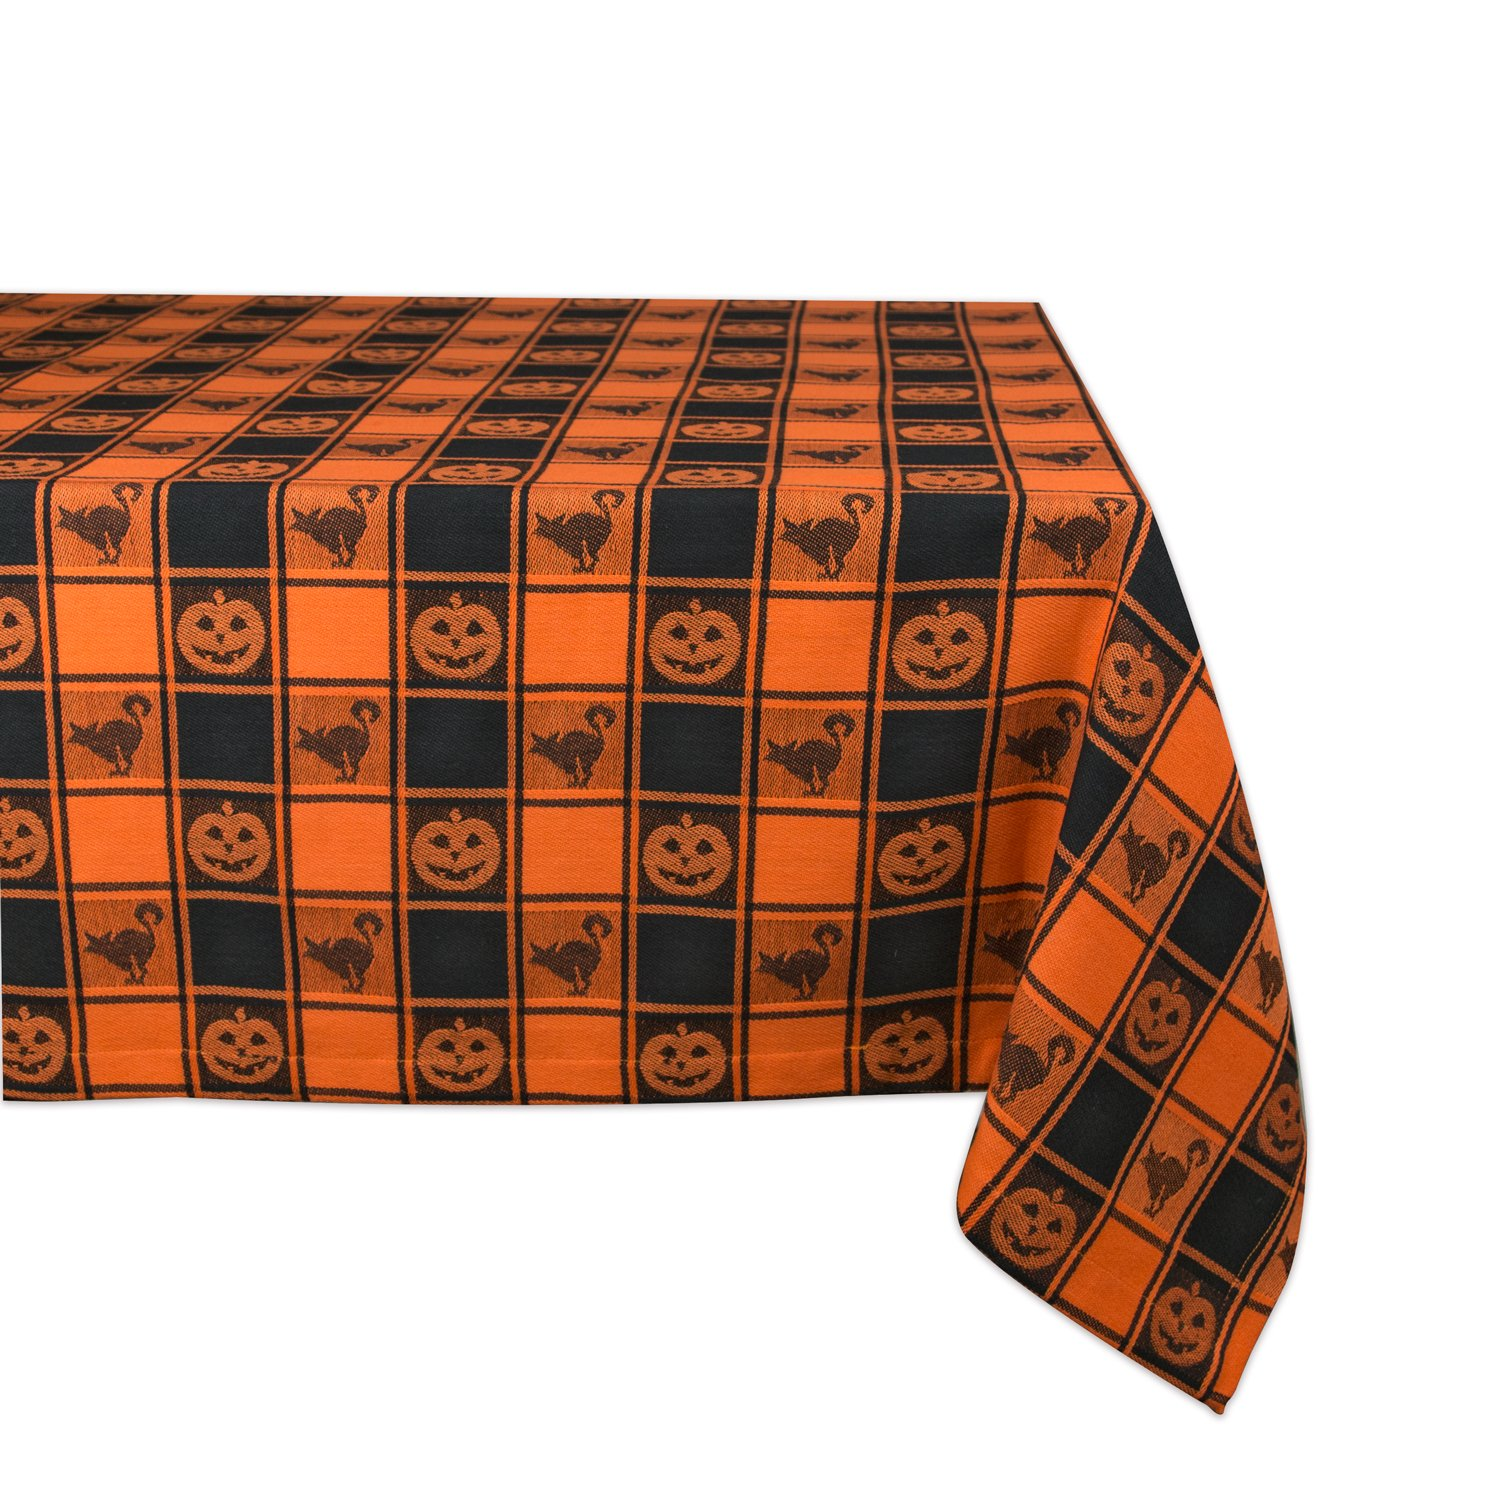 DII 60x84 Cotton Tablecloth, Black & Orange Check Plaid with Cat & Jack O' Lantern - Perfect for Halloween, Dinner Parties and Scary Movie Nights